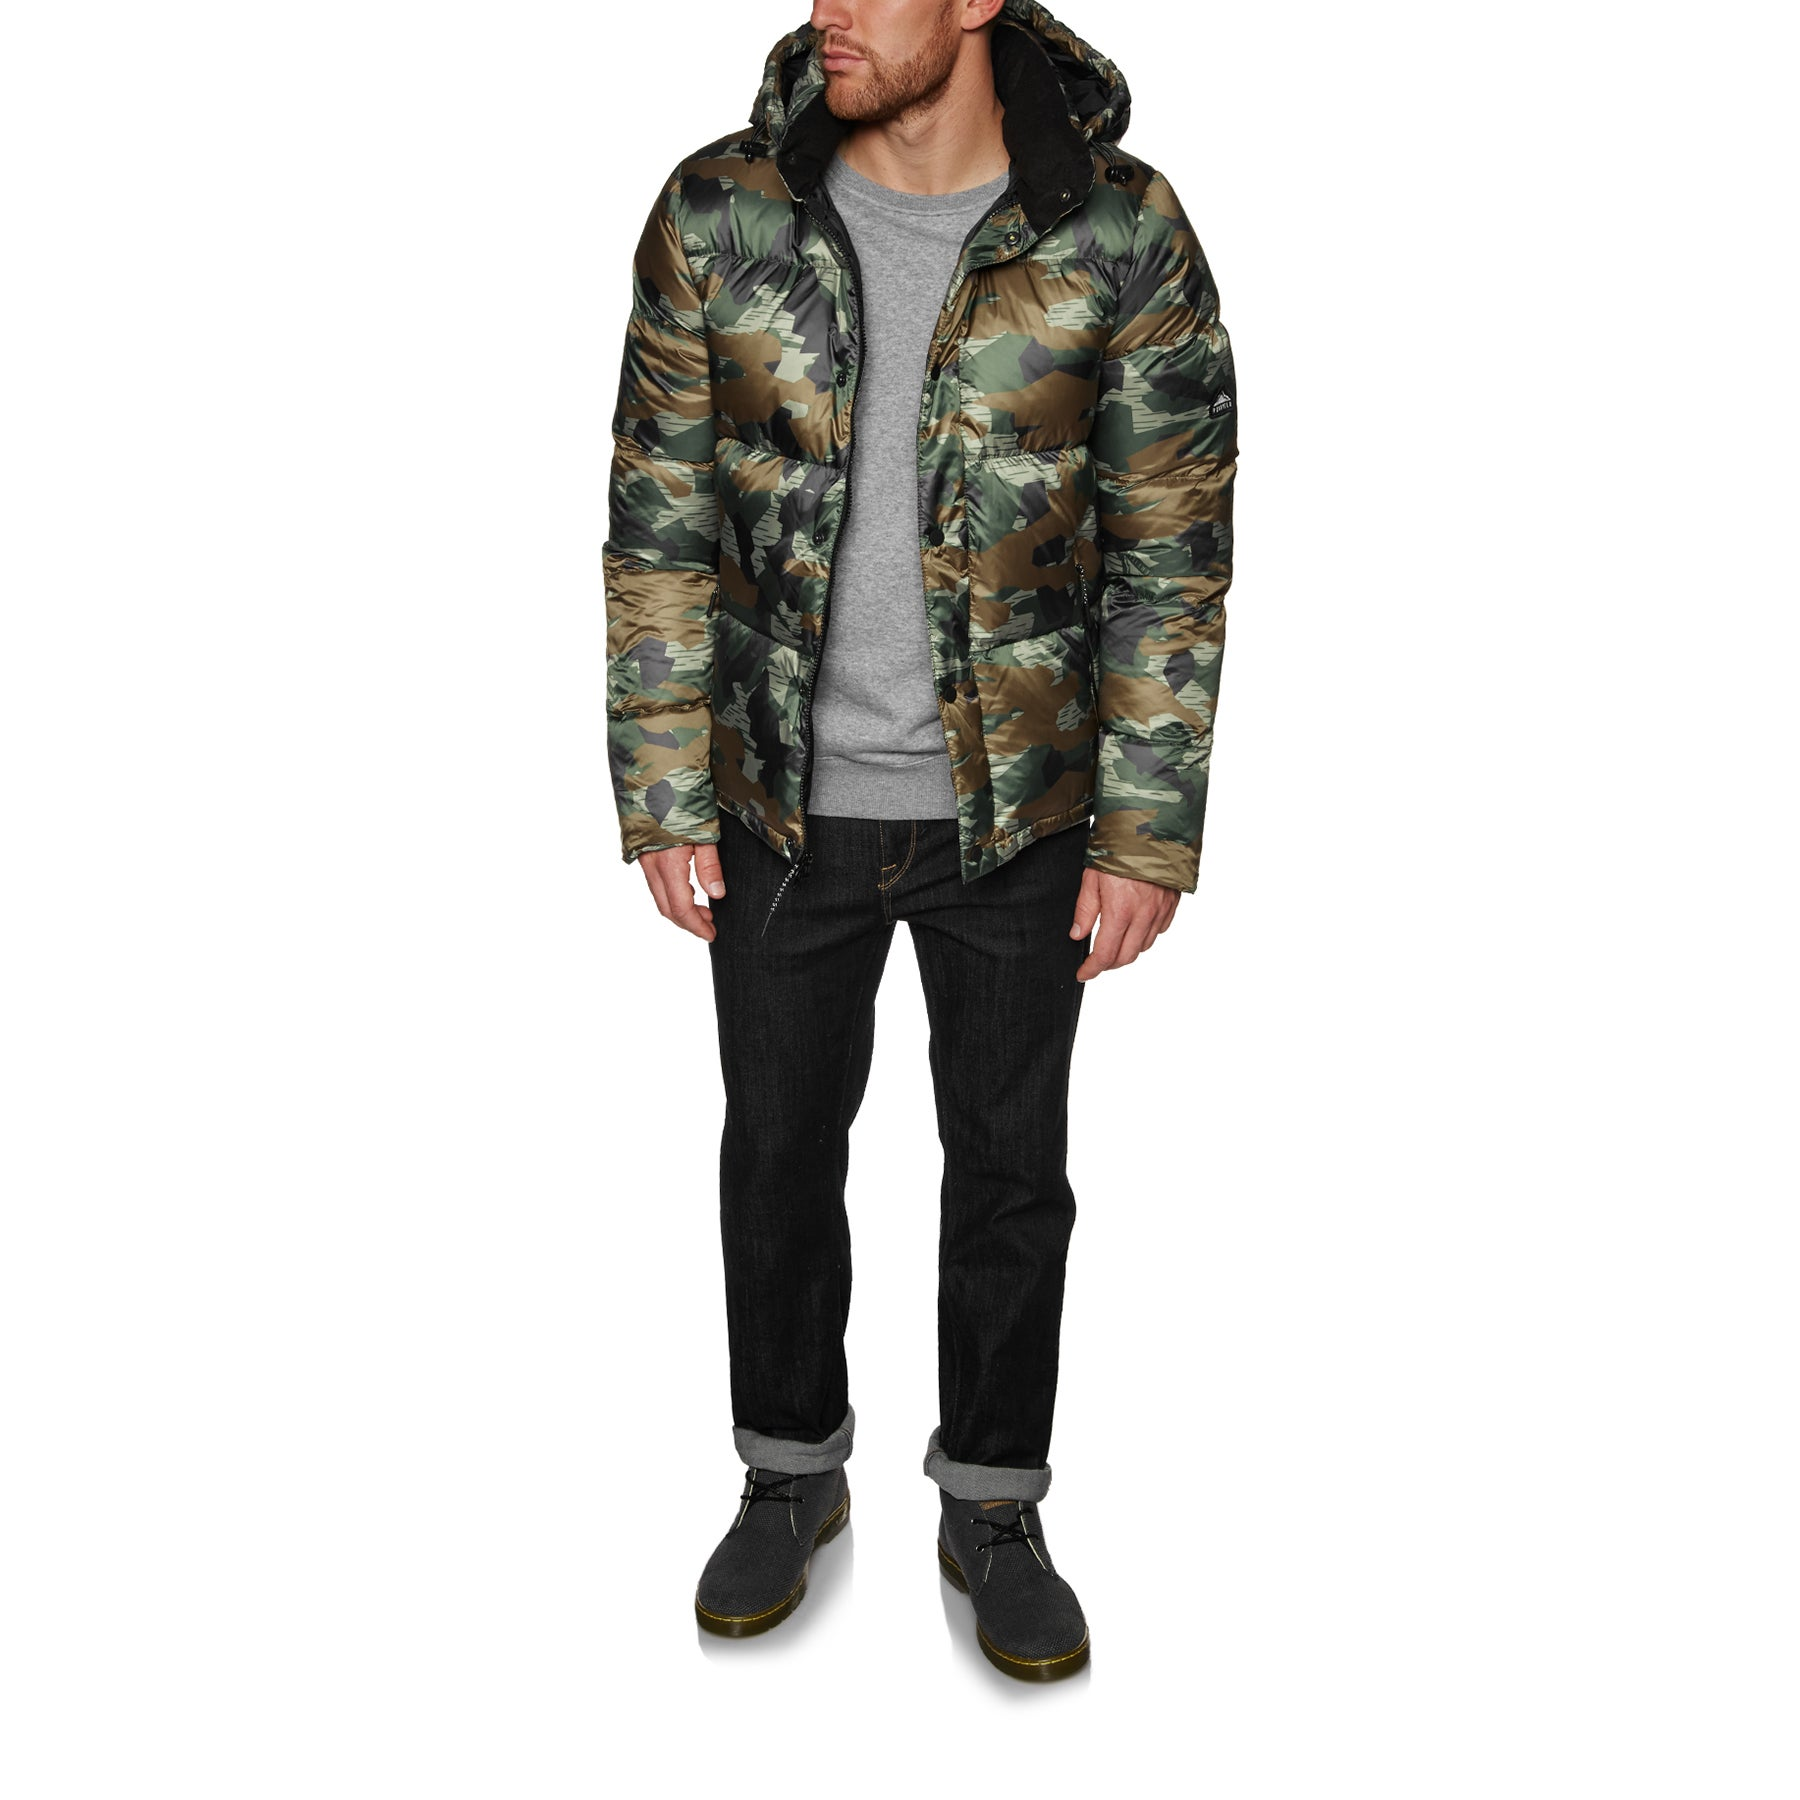 a07f7ab21b850 Penfield Equinox Camo Down Jacket available from Surfdome